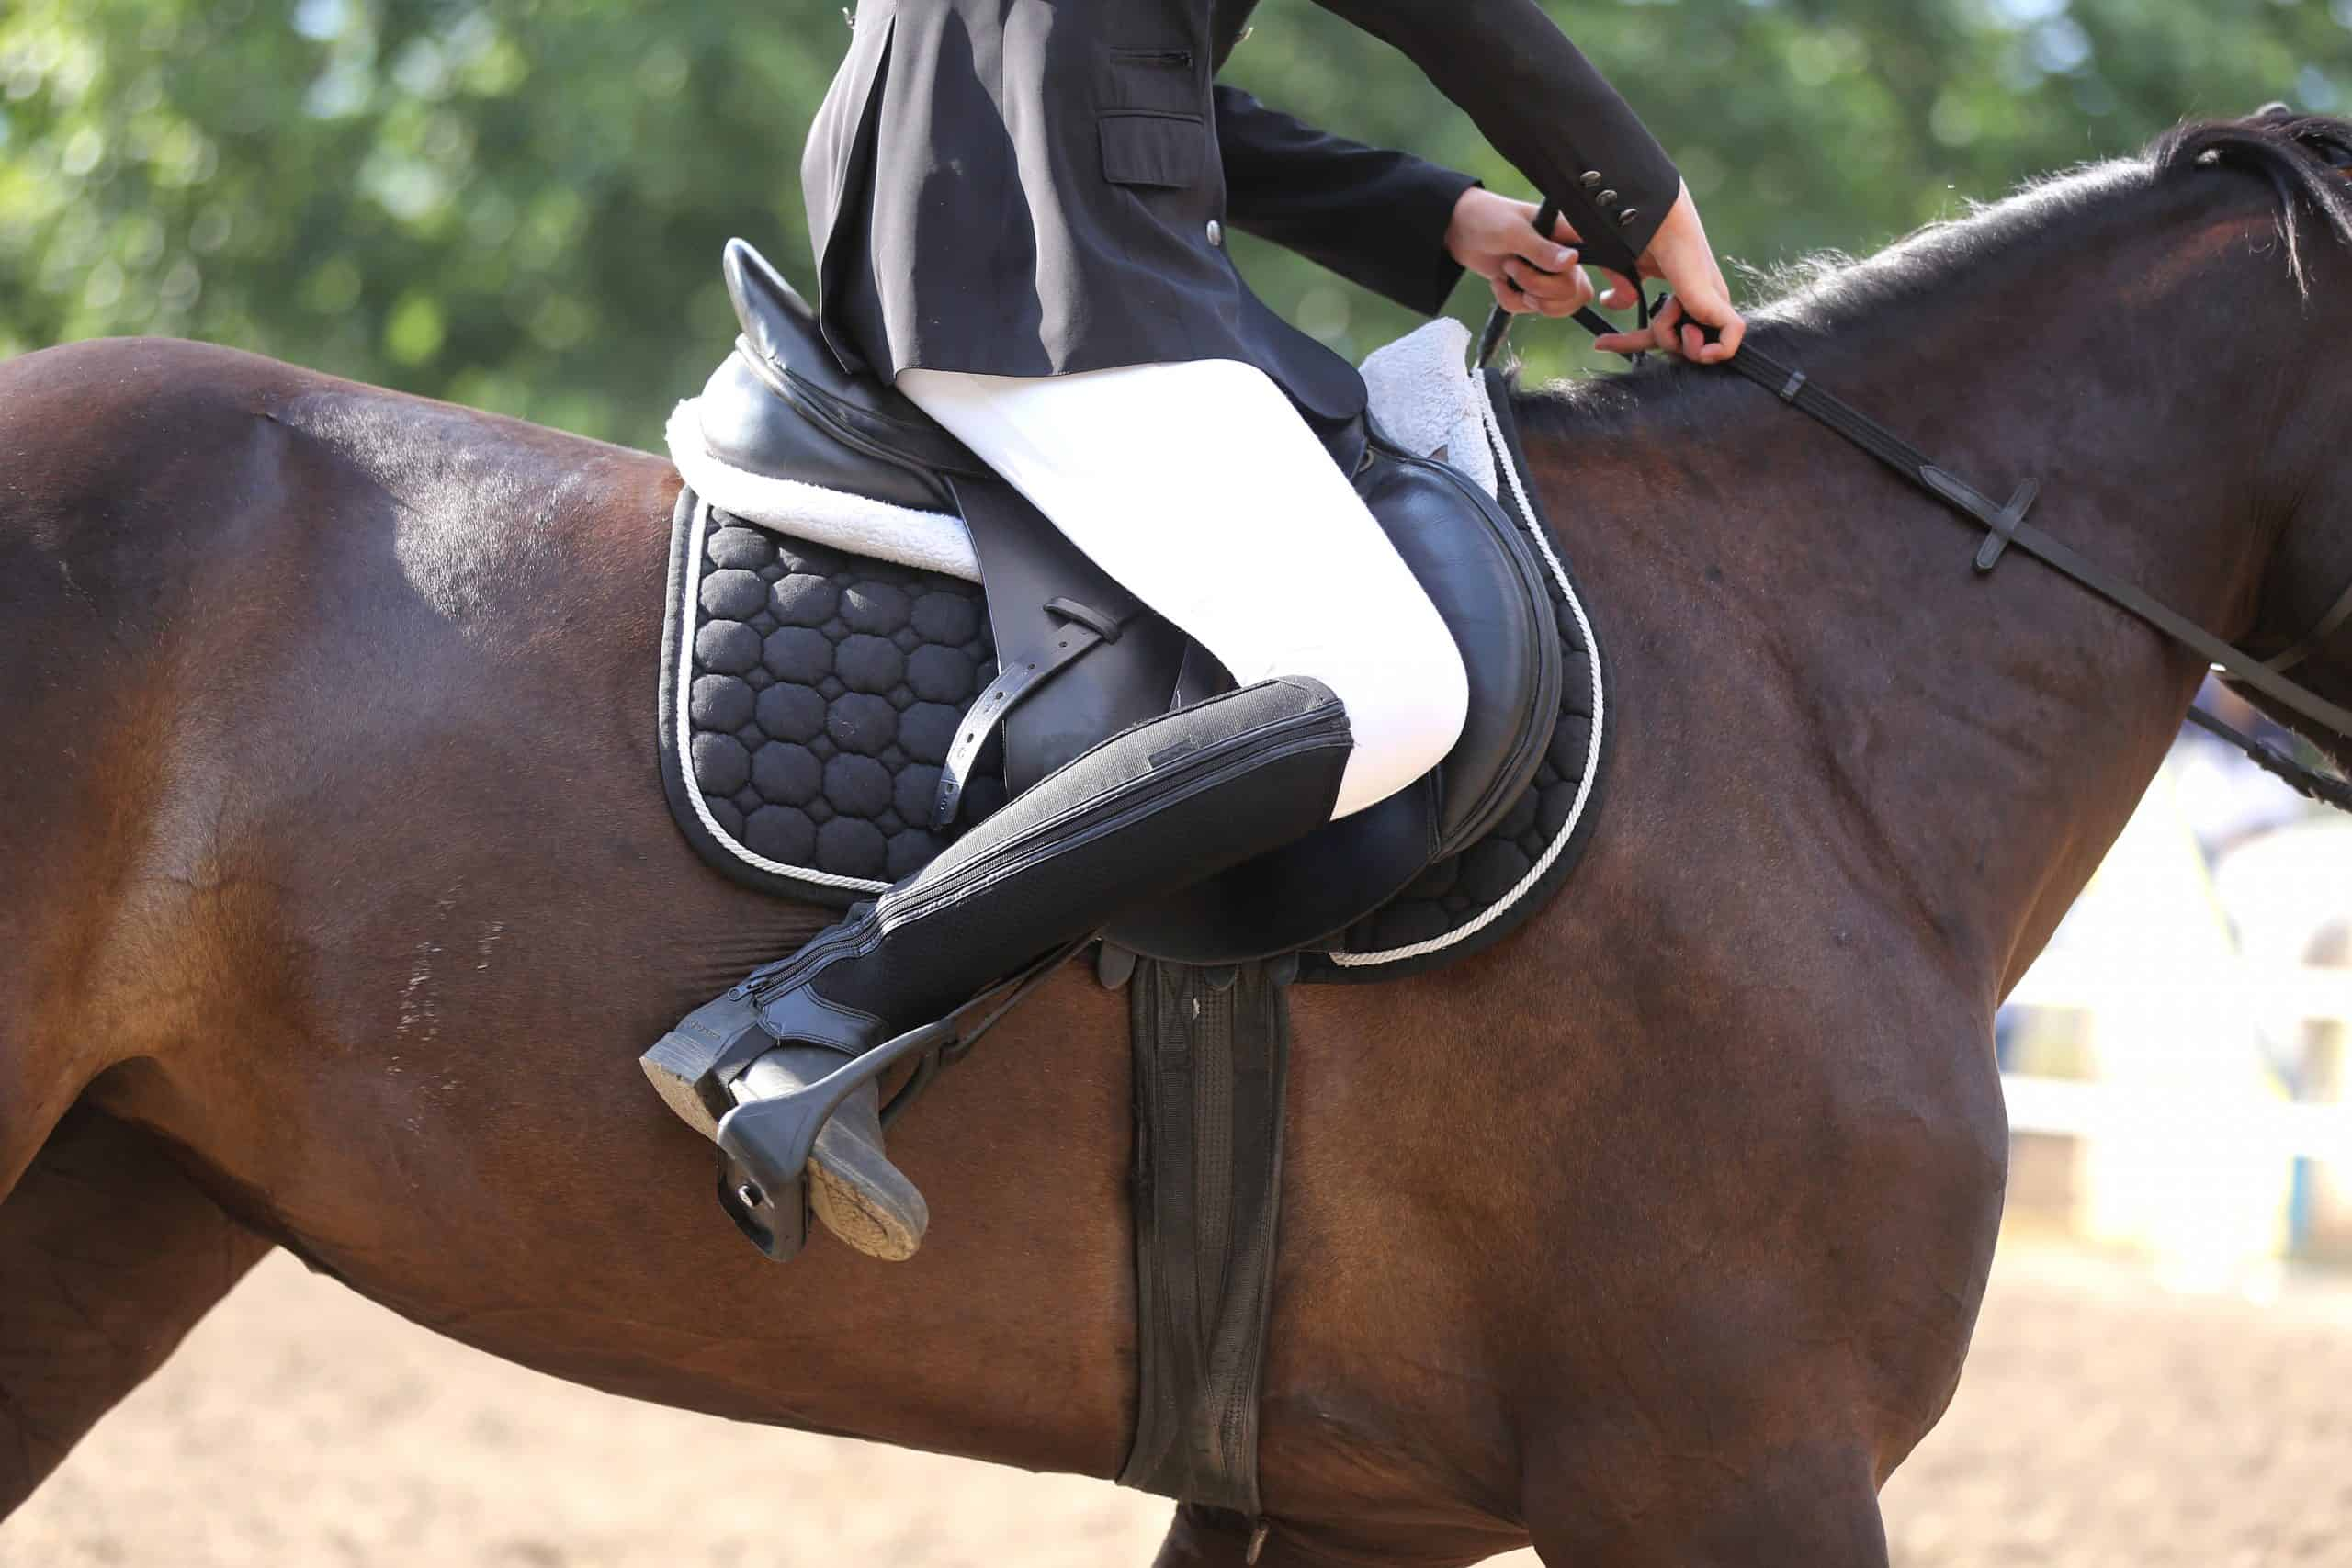 Beautiful handmade dressage horse riding saddle with girth, stirrup on saddle pad on the racetrack